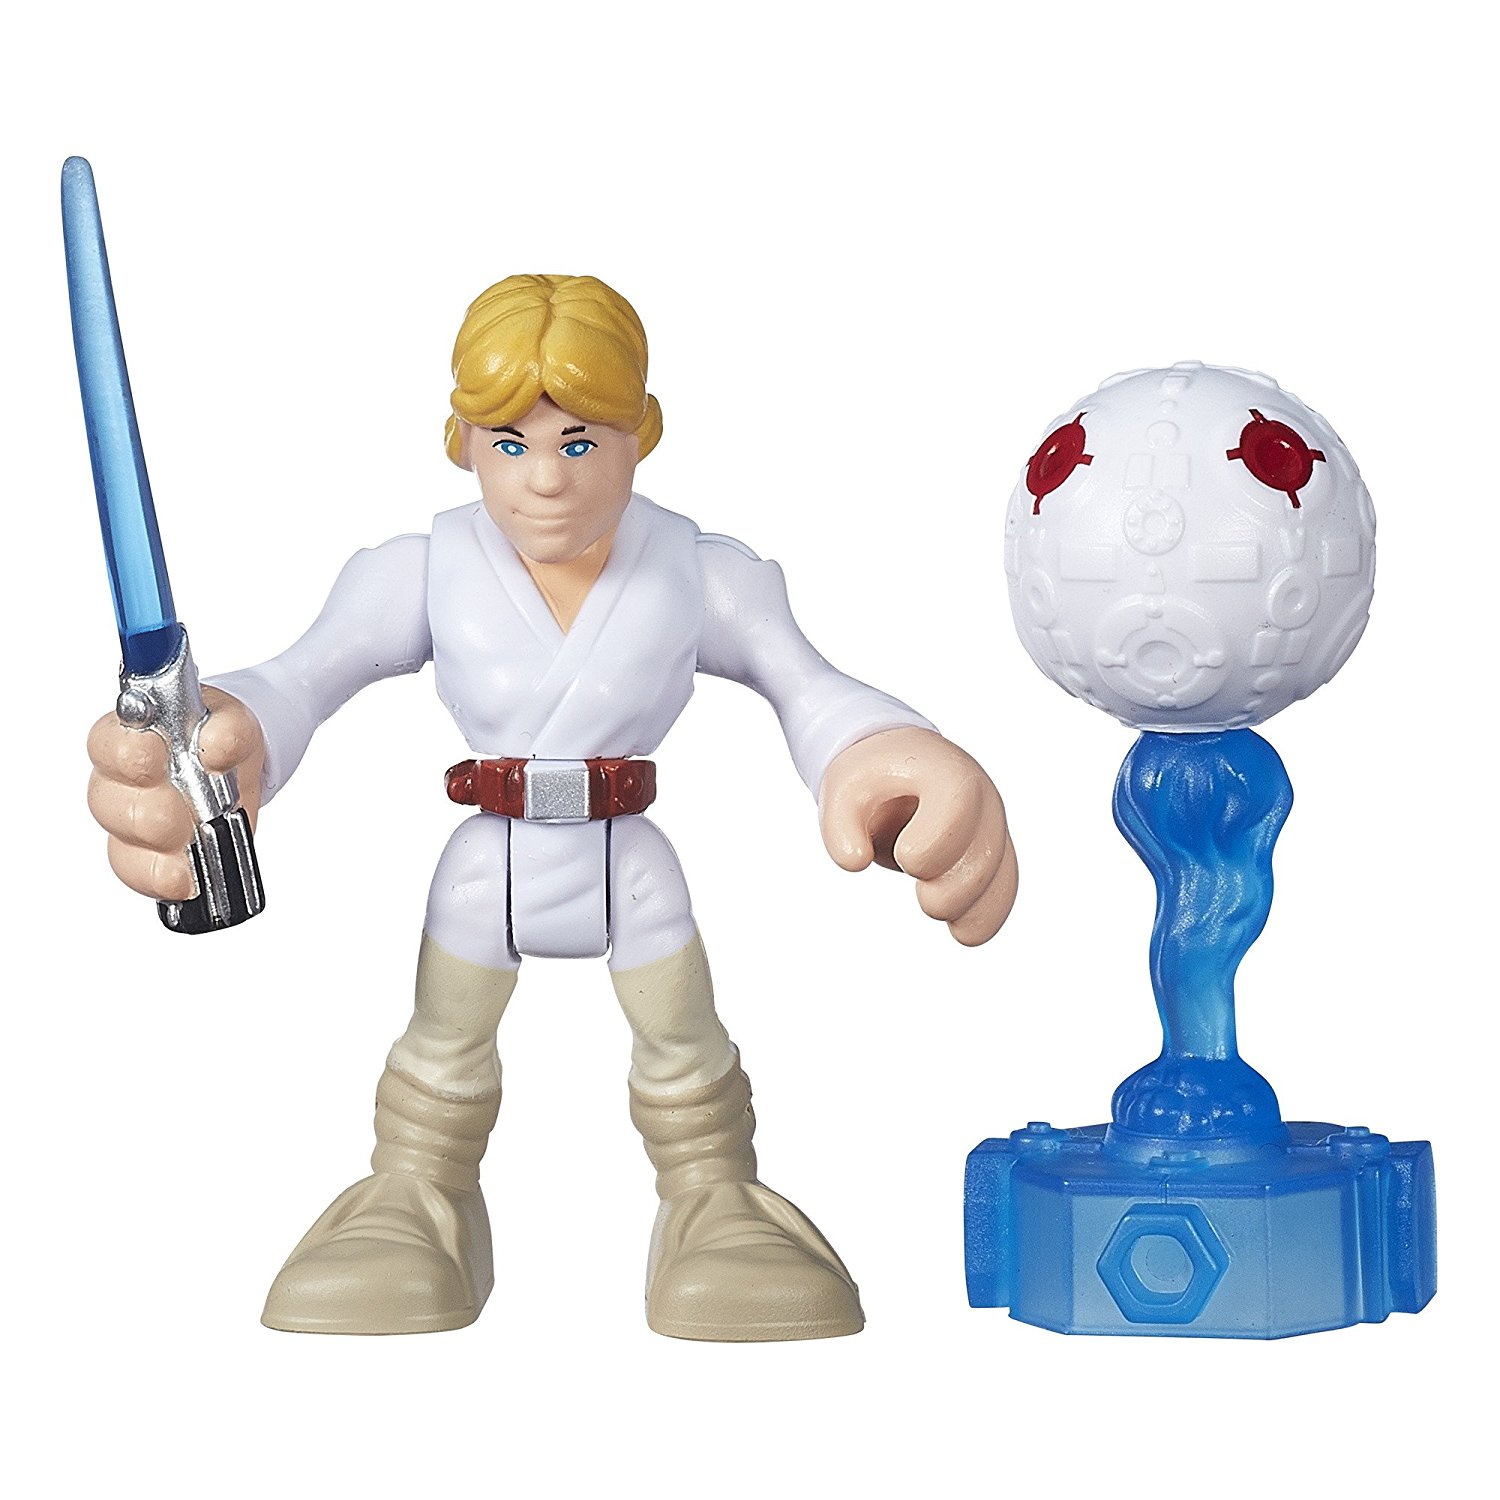 Playskool Heroes Galactic Heroes Star Wars Luke Skywalker by Hasbro